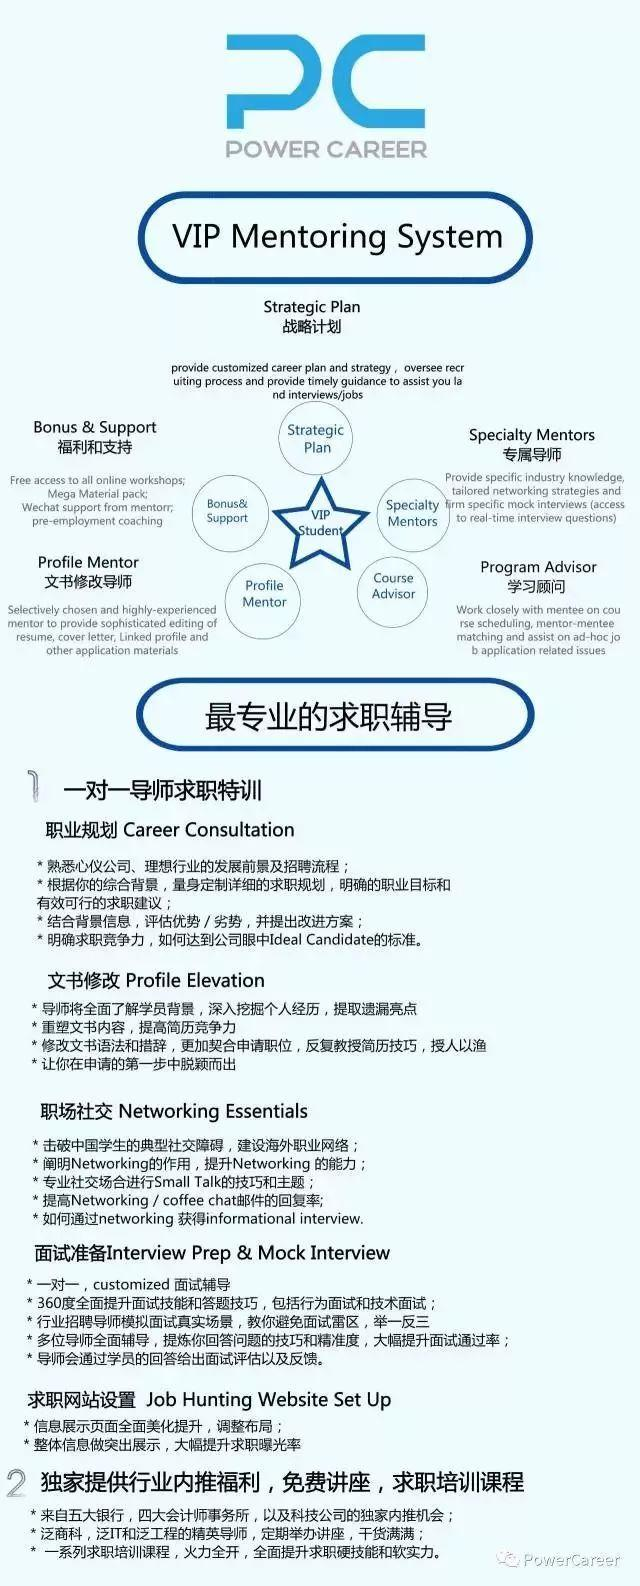 offer 捷报| 恭喜VIP学员斩获北美顶级猎头Randstad Business Analyst Co-op Offer !